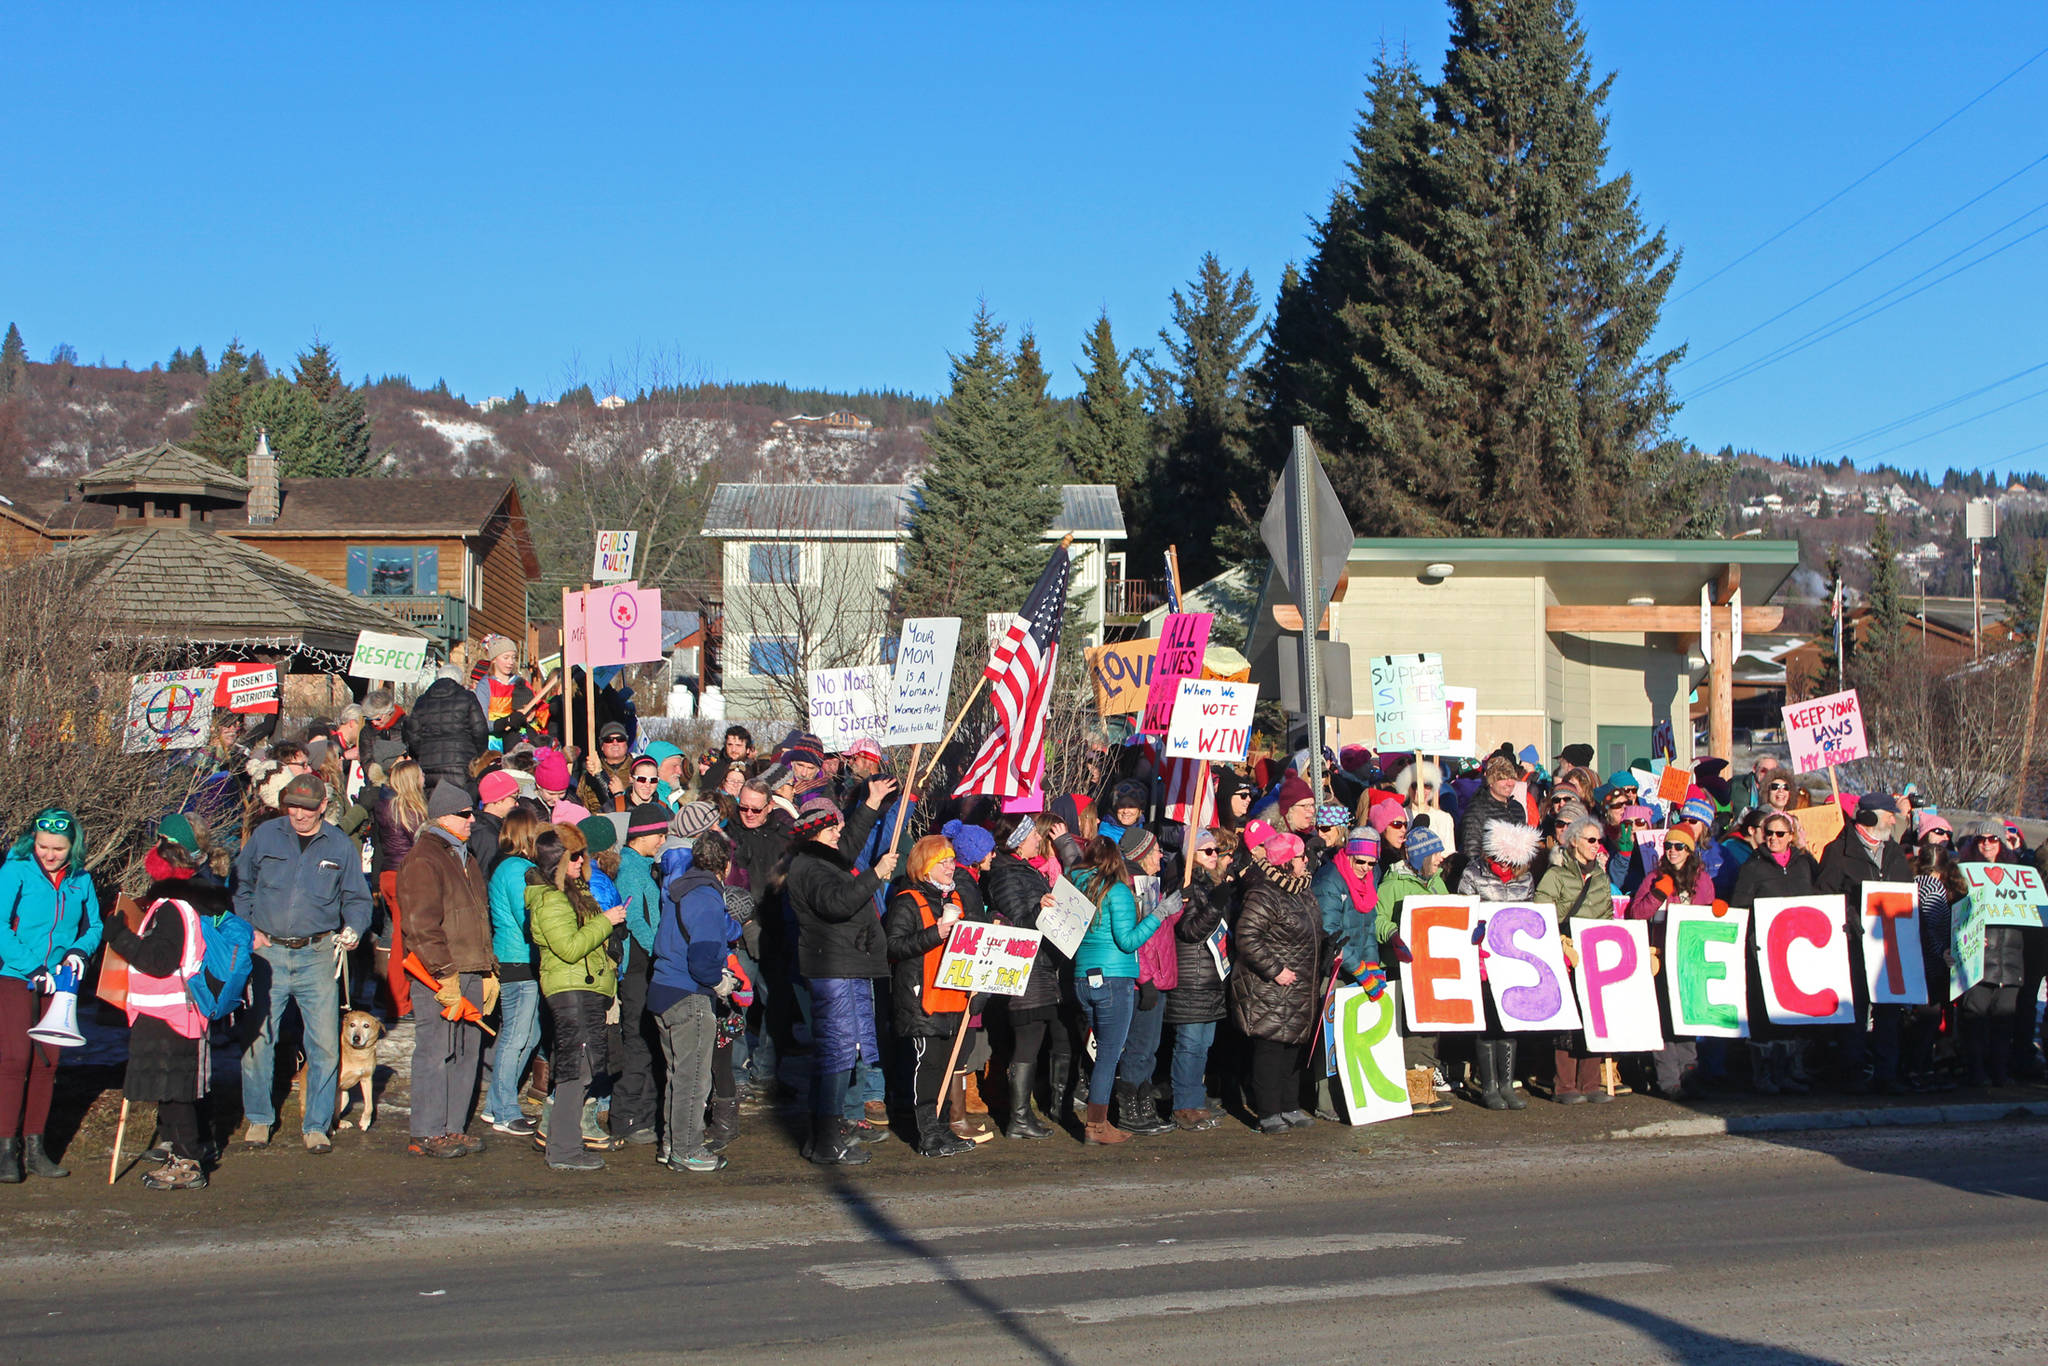 Participants in the 2019 Women's March on Homer gather at WKFL Park following the march Saturday, Jan. 19, 2019 in Homer, Alaska. (Photo by Megan Pacer/Homer News)